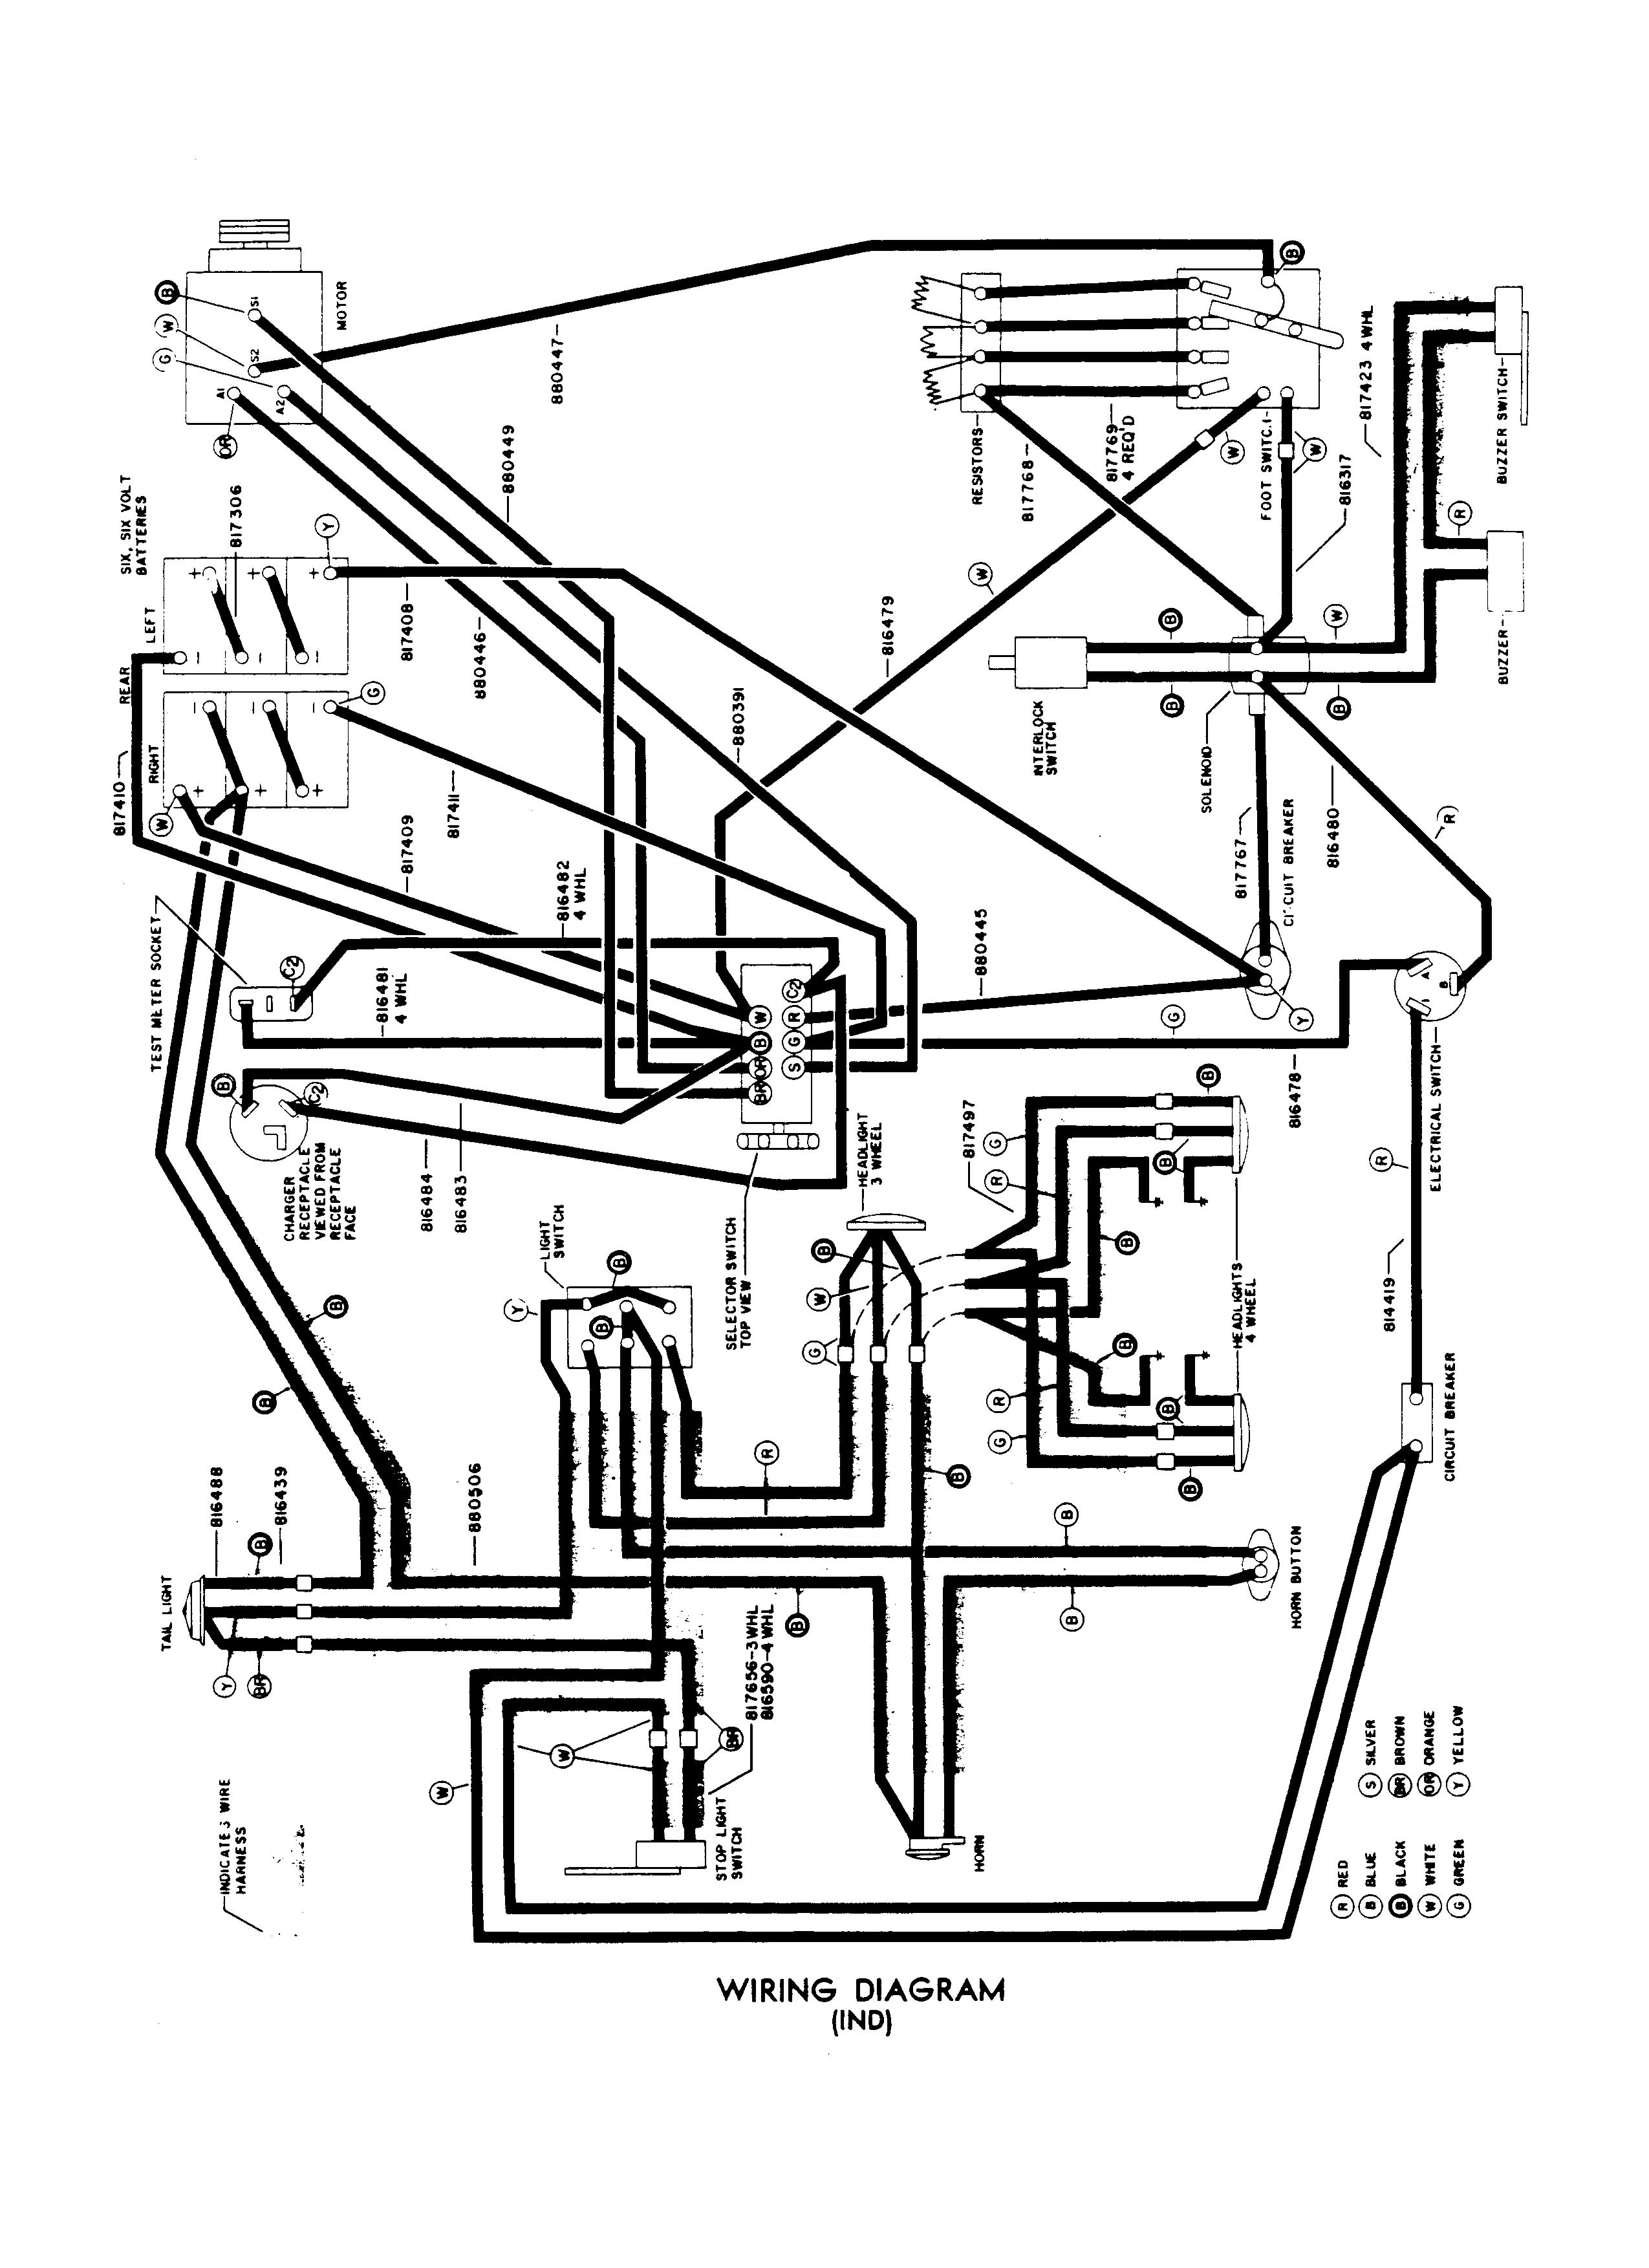 Electric Motor Drawing At Free For Personal Use Yamaha Drive Wiring Diagram 2550x3507 Ke Diagrams Database Harley Knucklehead